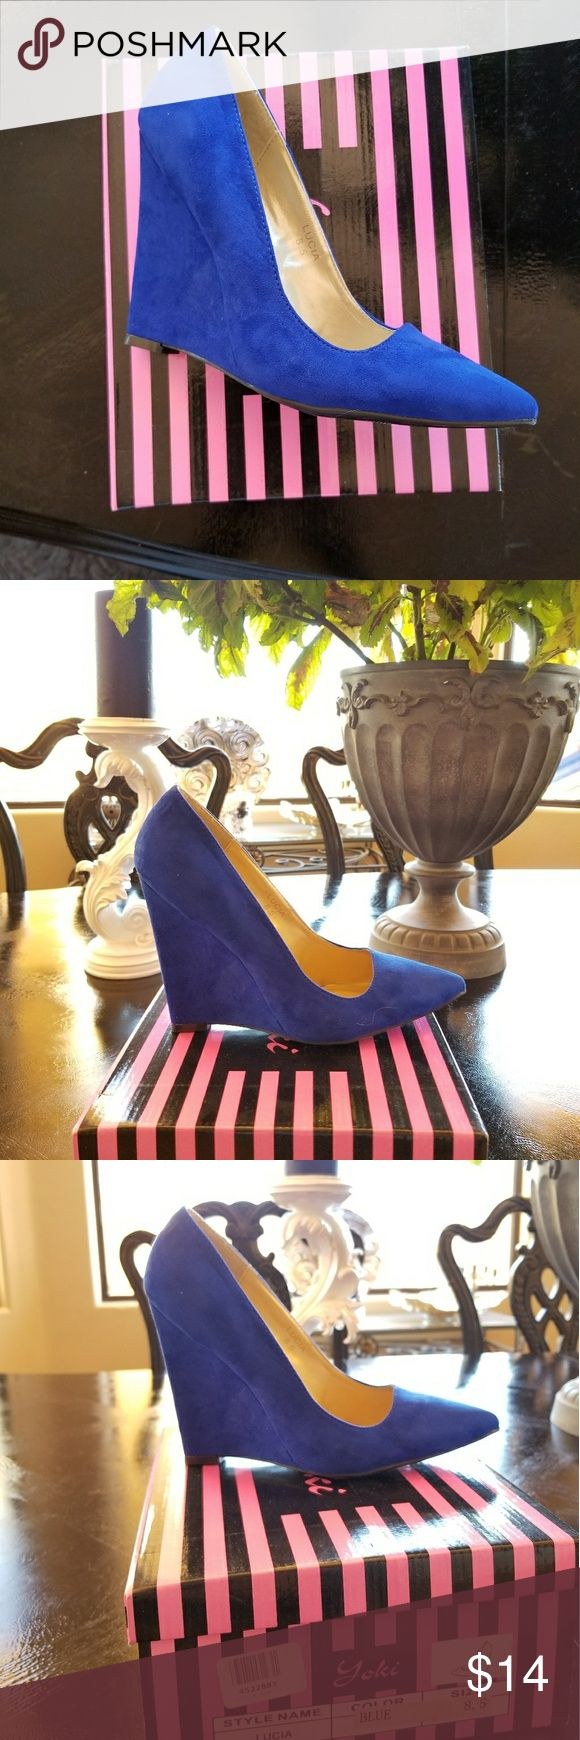 Yoki Royal Blue Wedge Heel. New 8.5M Fabulous Faux Suede Wedge Pointed Toe Heels. Heel height is approx 4 inches. Yoki Shoes Wedges